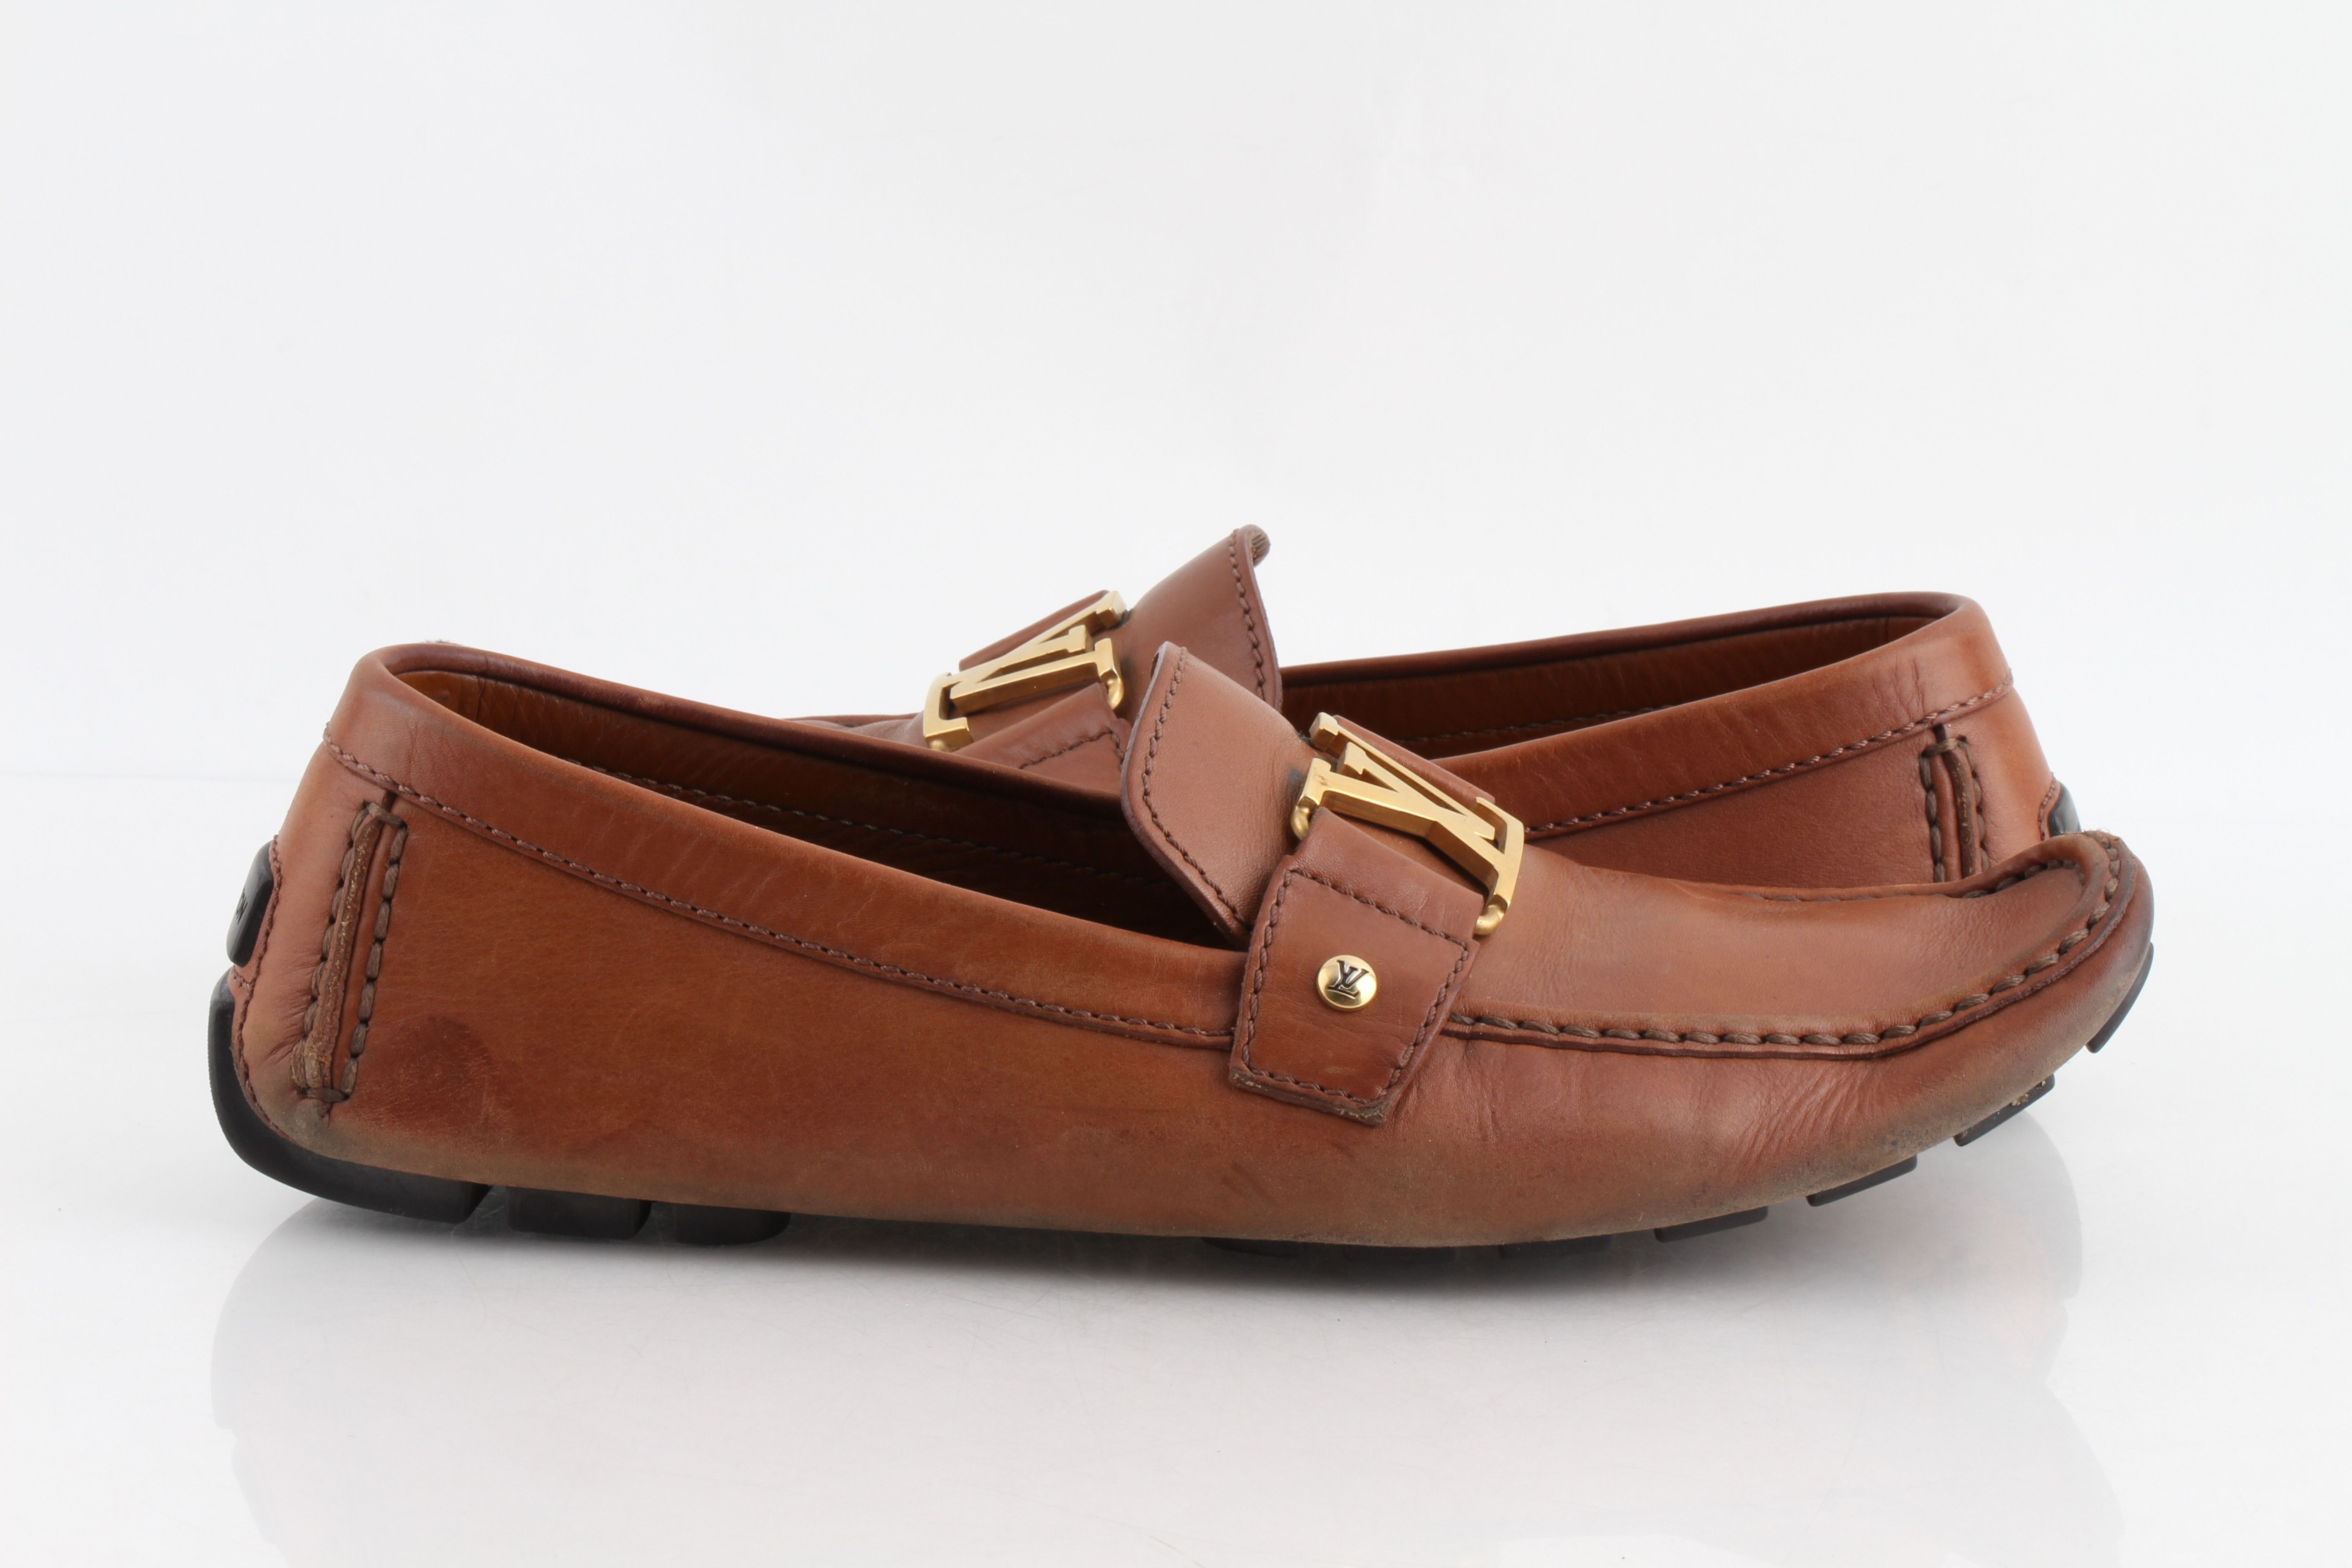 lv loafers